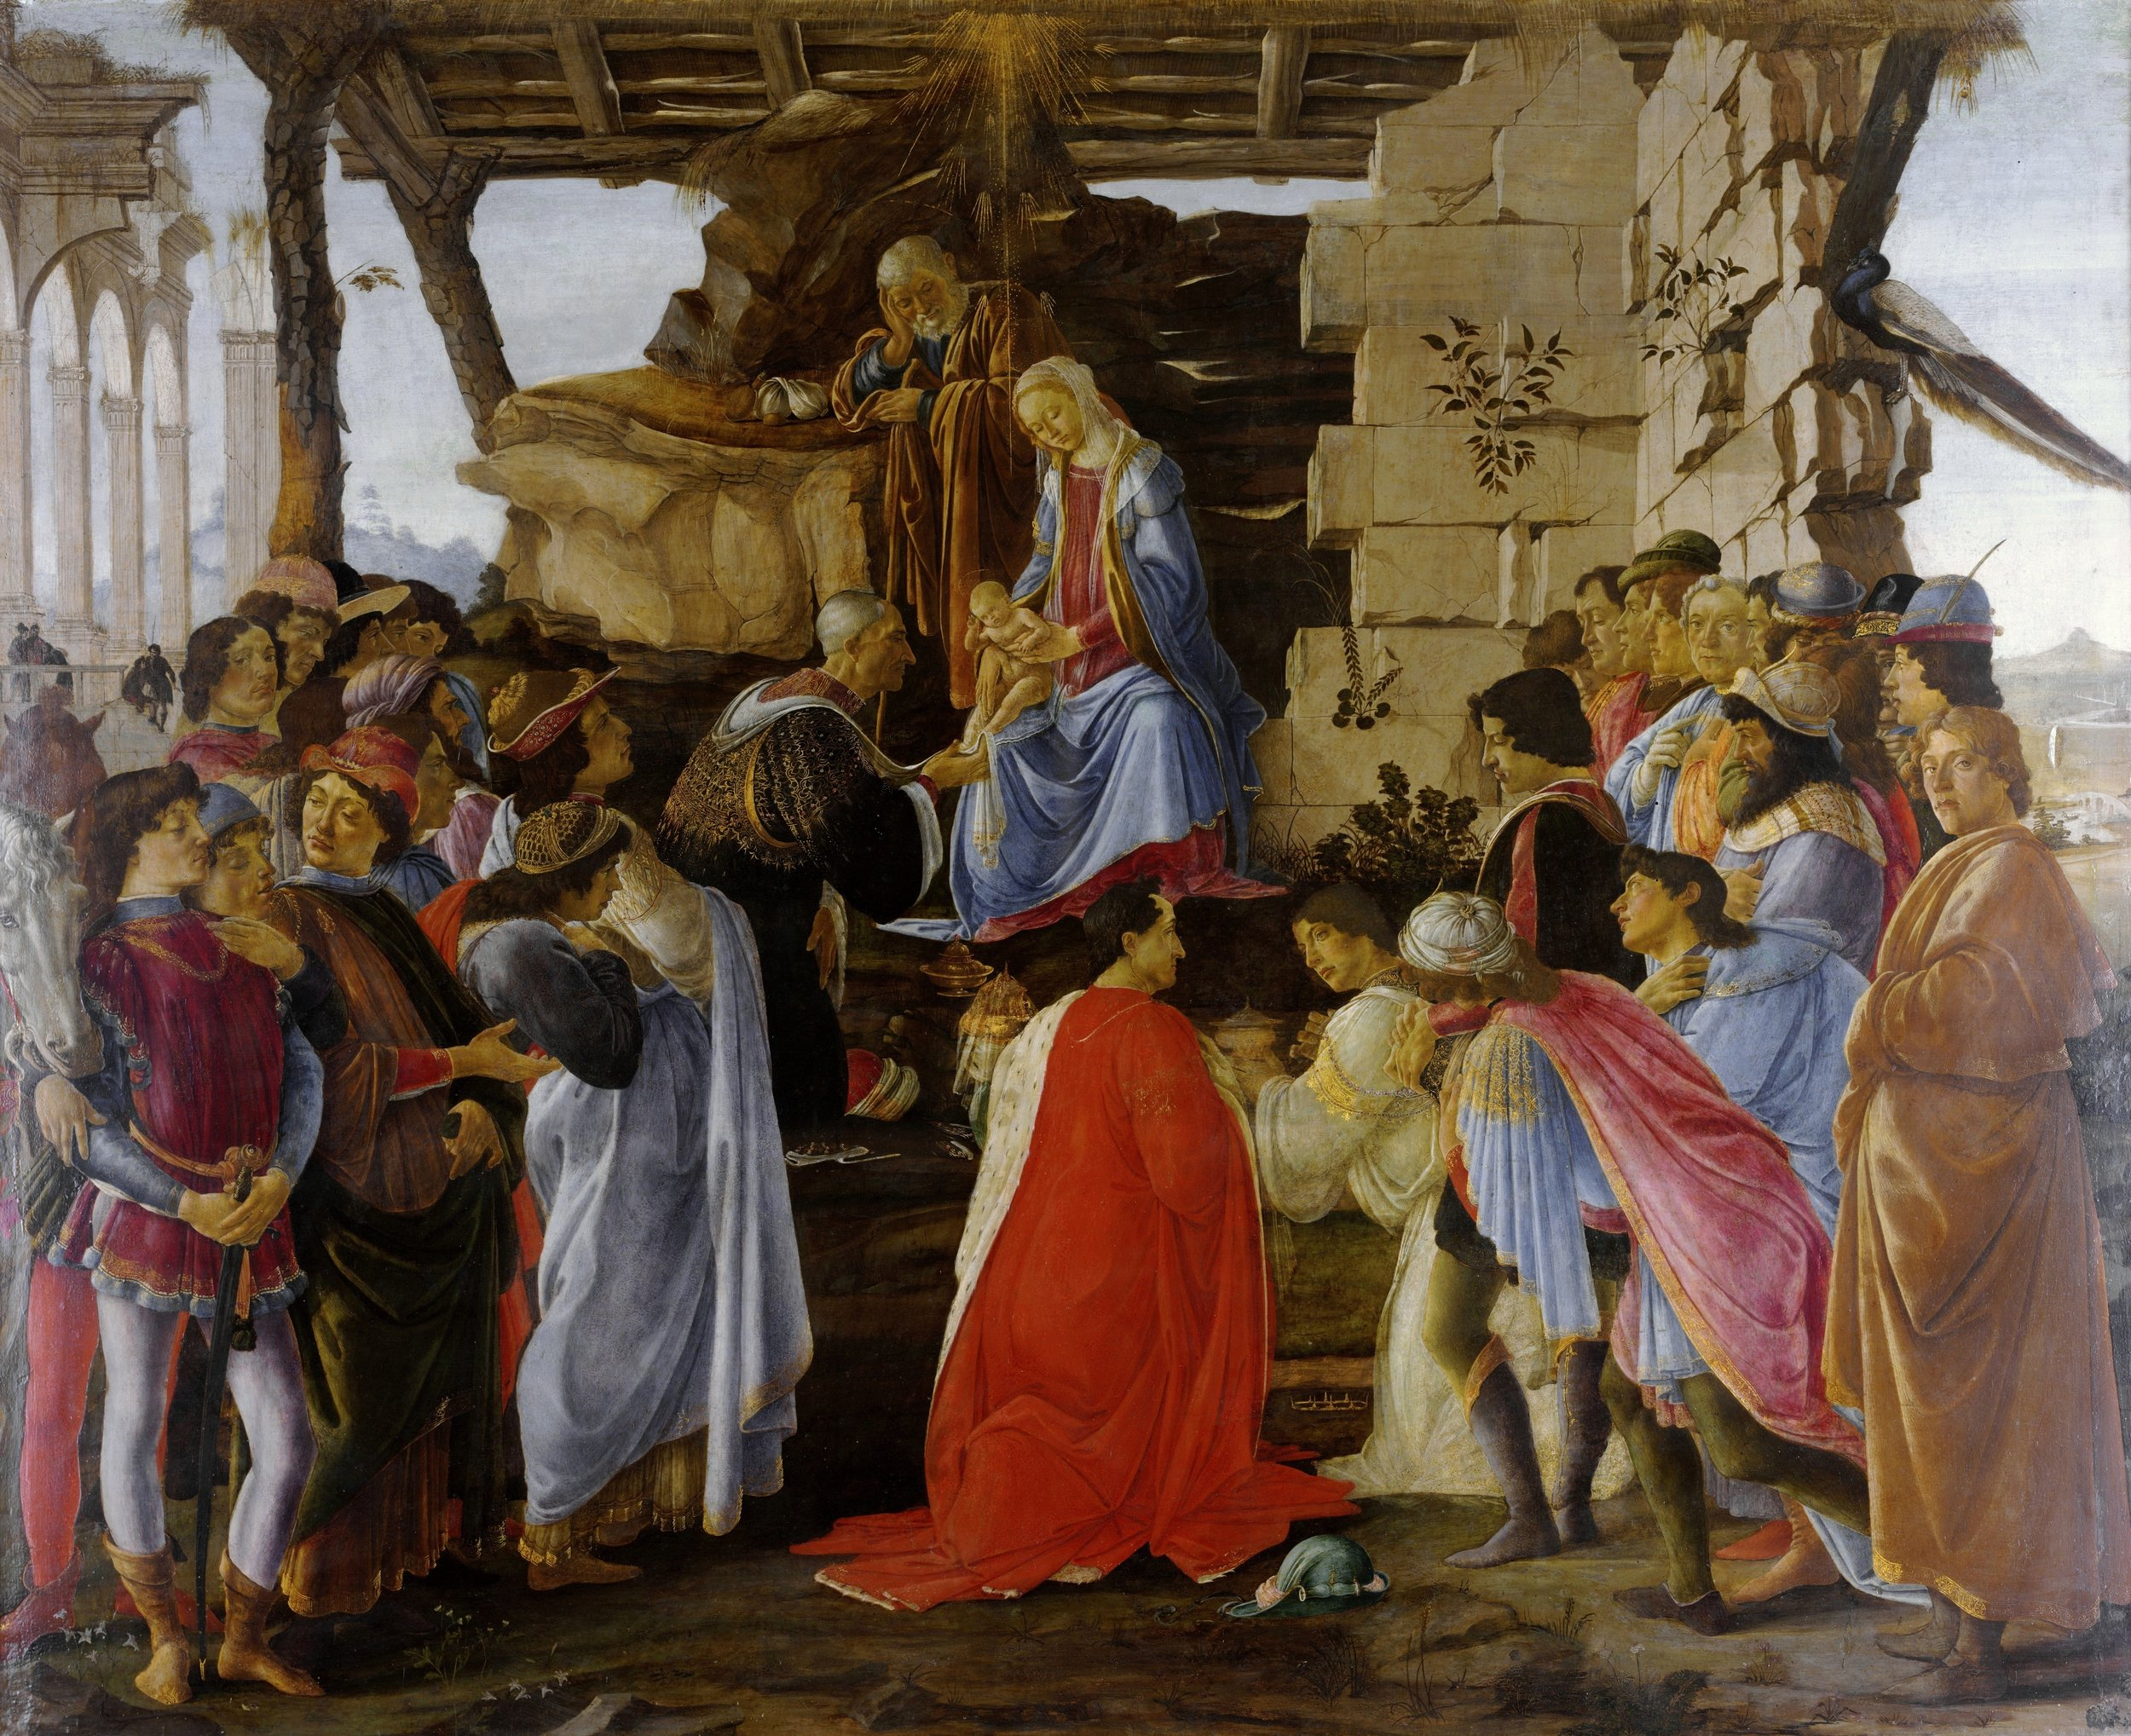 """Botticelli's """"Adoration of the Magi"""", where Cosimo de Medici is pictured washing the feet of baby Jesus. This picture could have been called """"The Adoration of the Medici"""" (as Niall Ferguson observed in """"The ascent of Money"""")"""